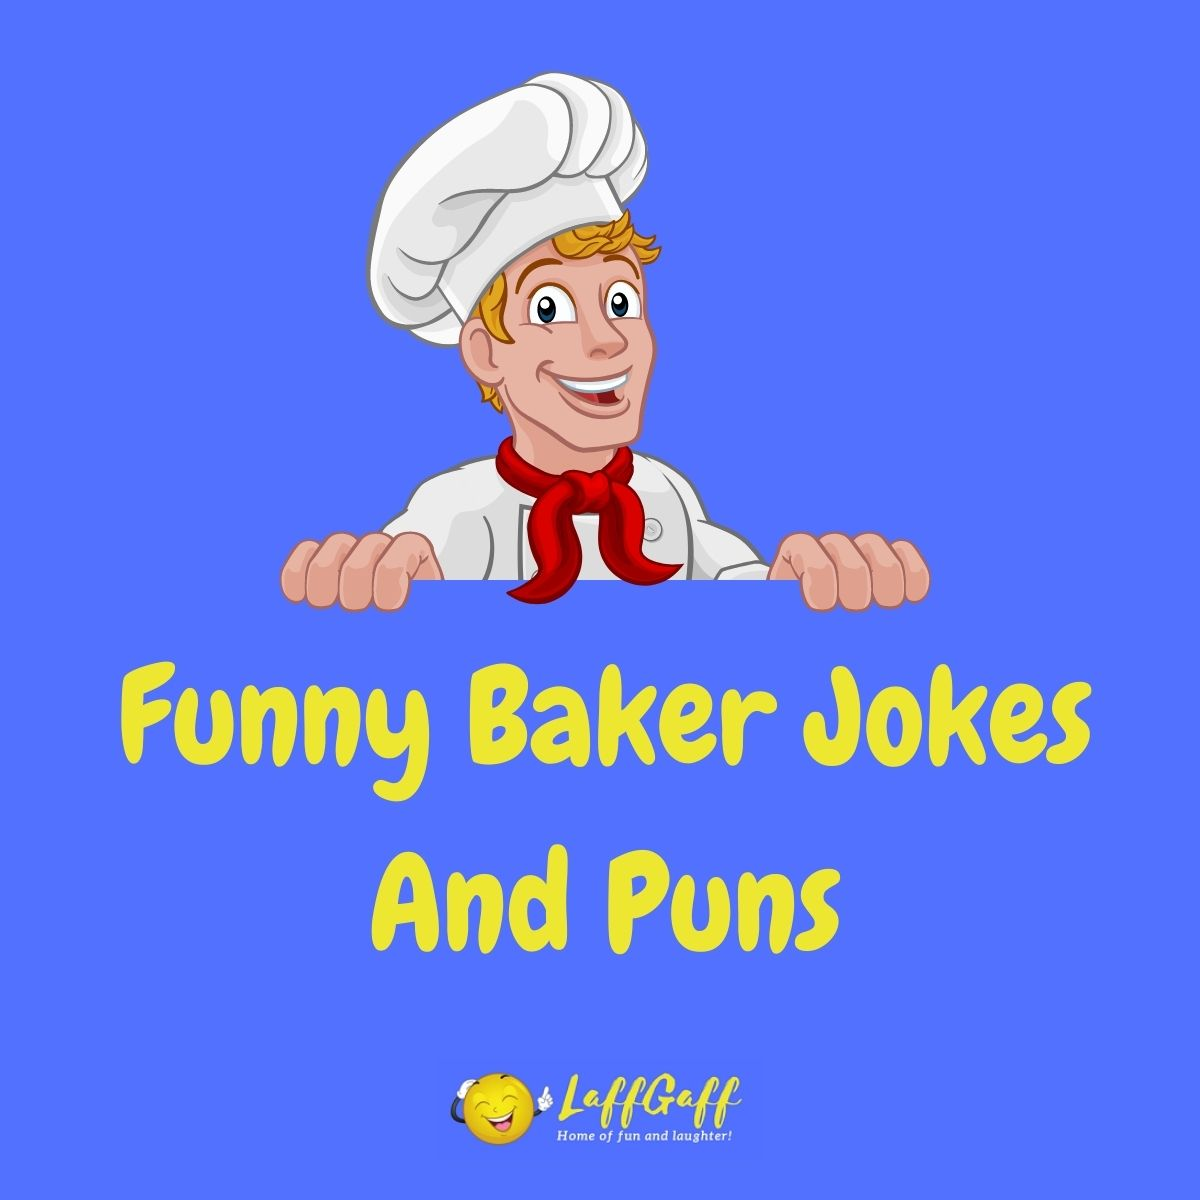 Featured image for a page of funny baker jokes and puns.